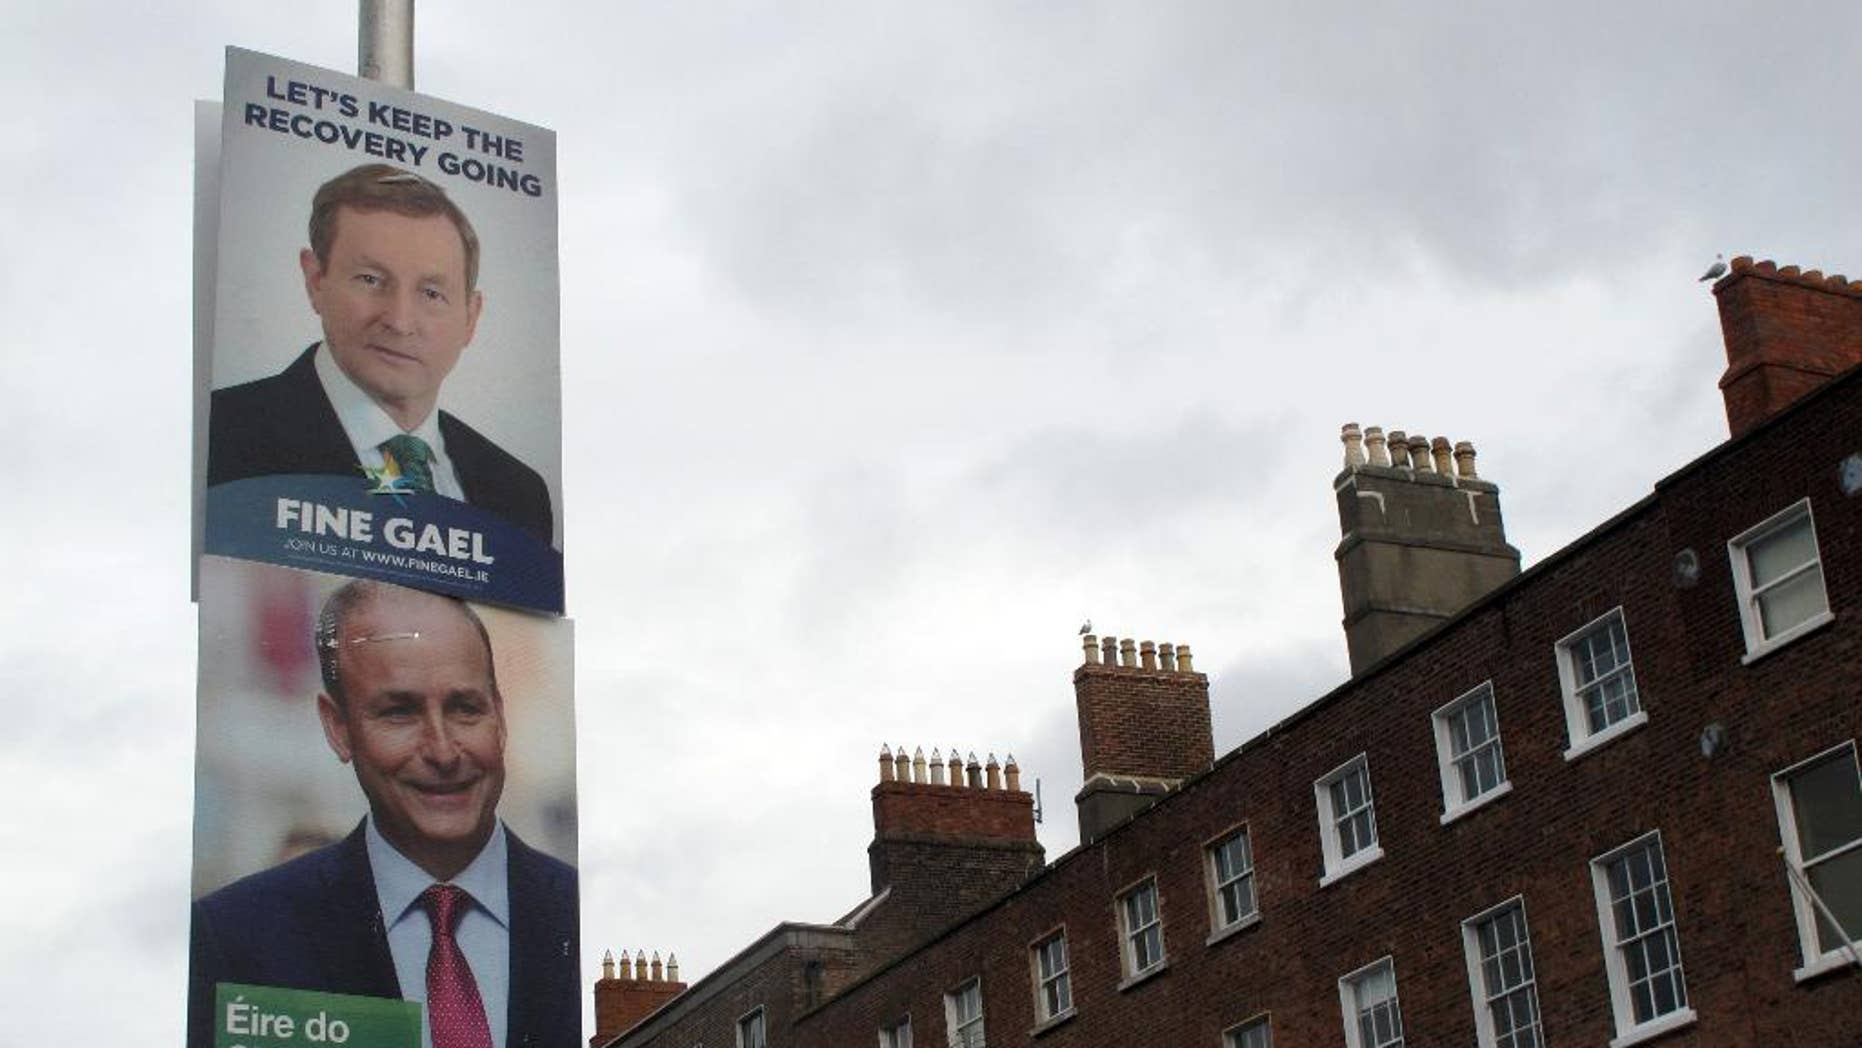 FILE - This  is a  Feb. 5, 2016 file photo, of  rival election posters for Fine Gael leader Enda Kenny and Fianna Fail leader Micheal Martin as they adorn a lamp post in Dublin, Ireland. Ireland's lawmakers have failed for a third time to elect a prime minister. Thursday's, April 14, 2016, stalemate leaves the country in political limbo for a record 48 days following an inconclusive Feb. 26 election.(AP Photo/Shawn Pogatchnik, File)